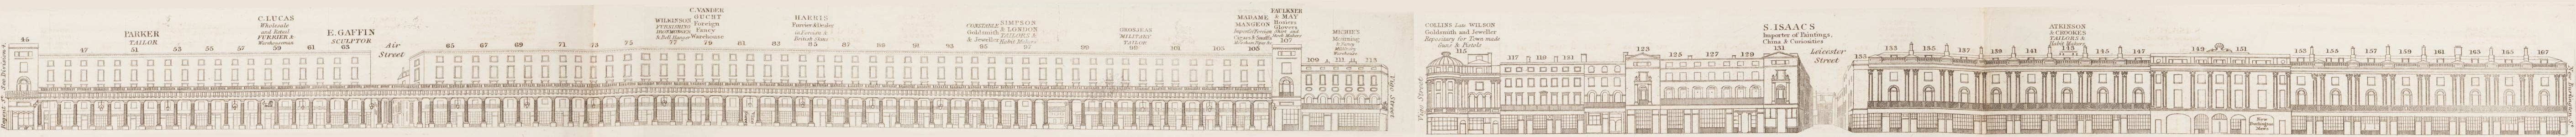 map - Tallis's London street views : No. 12. Regent Street, division 3 (west)